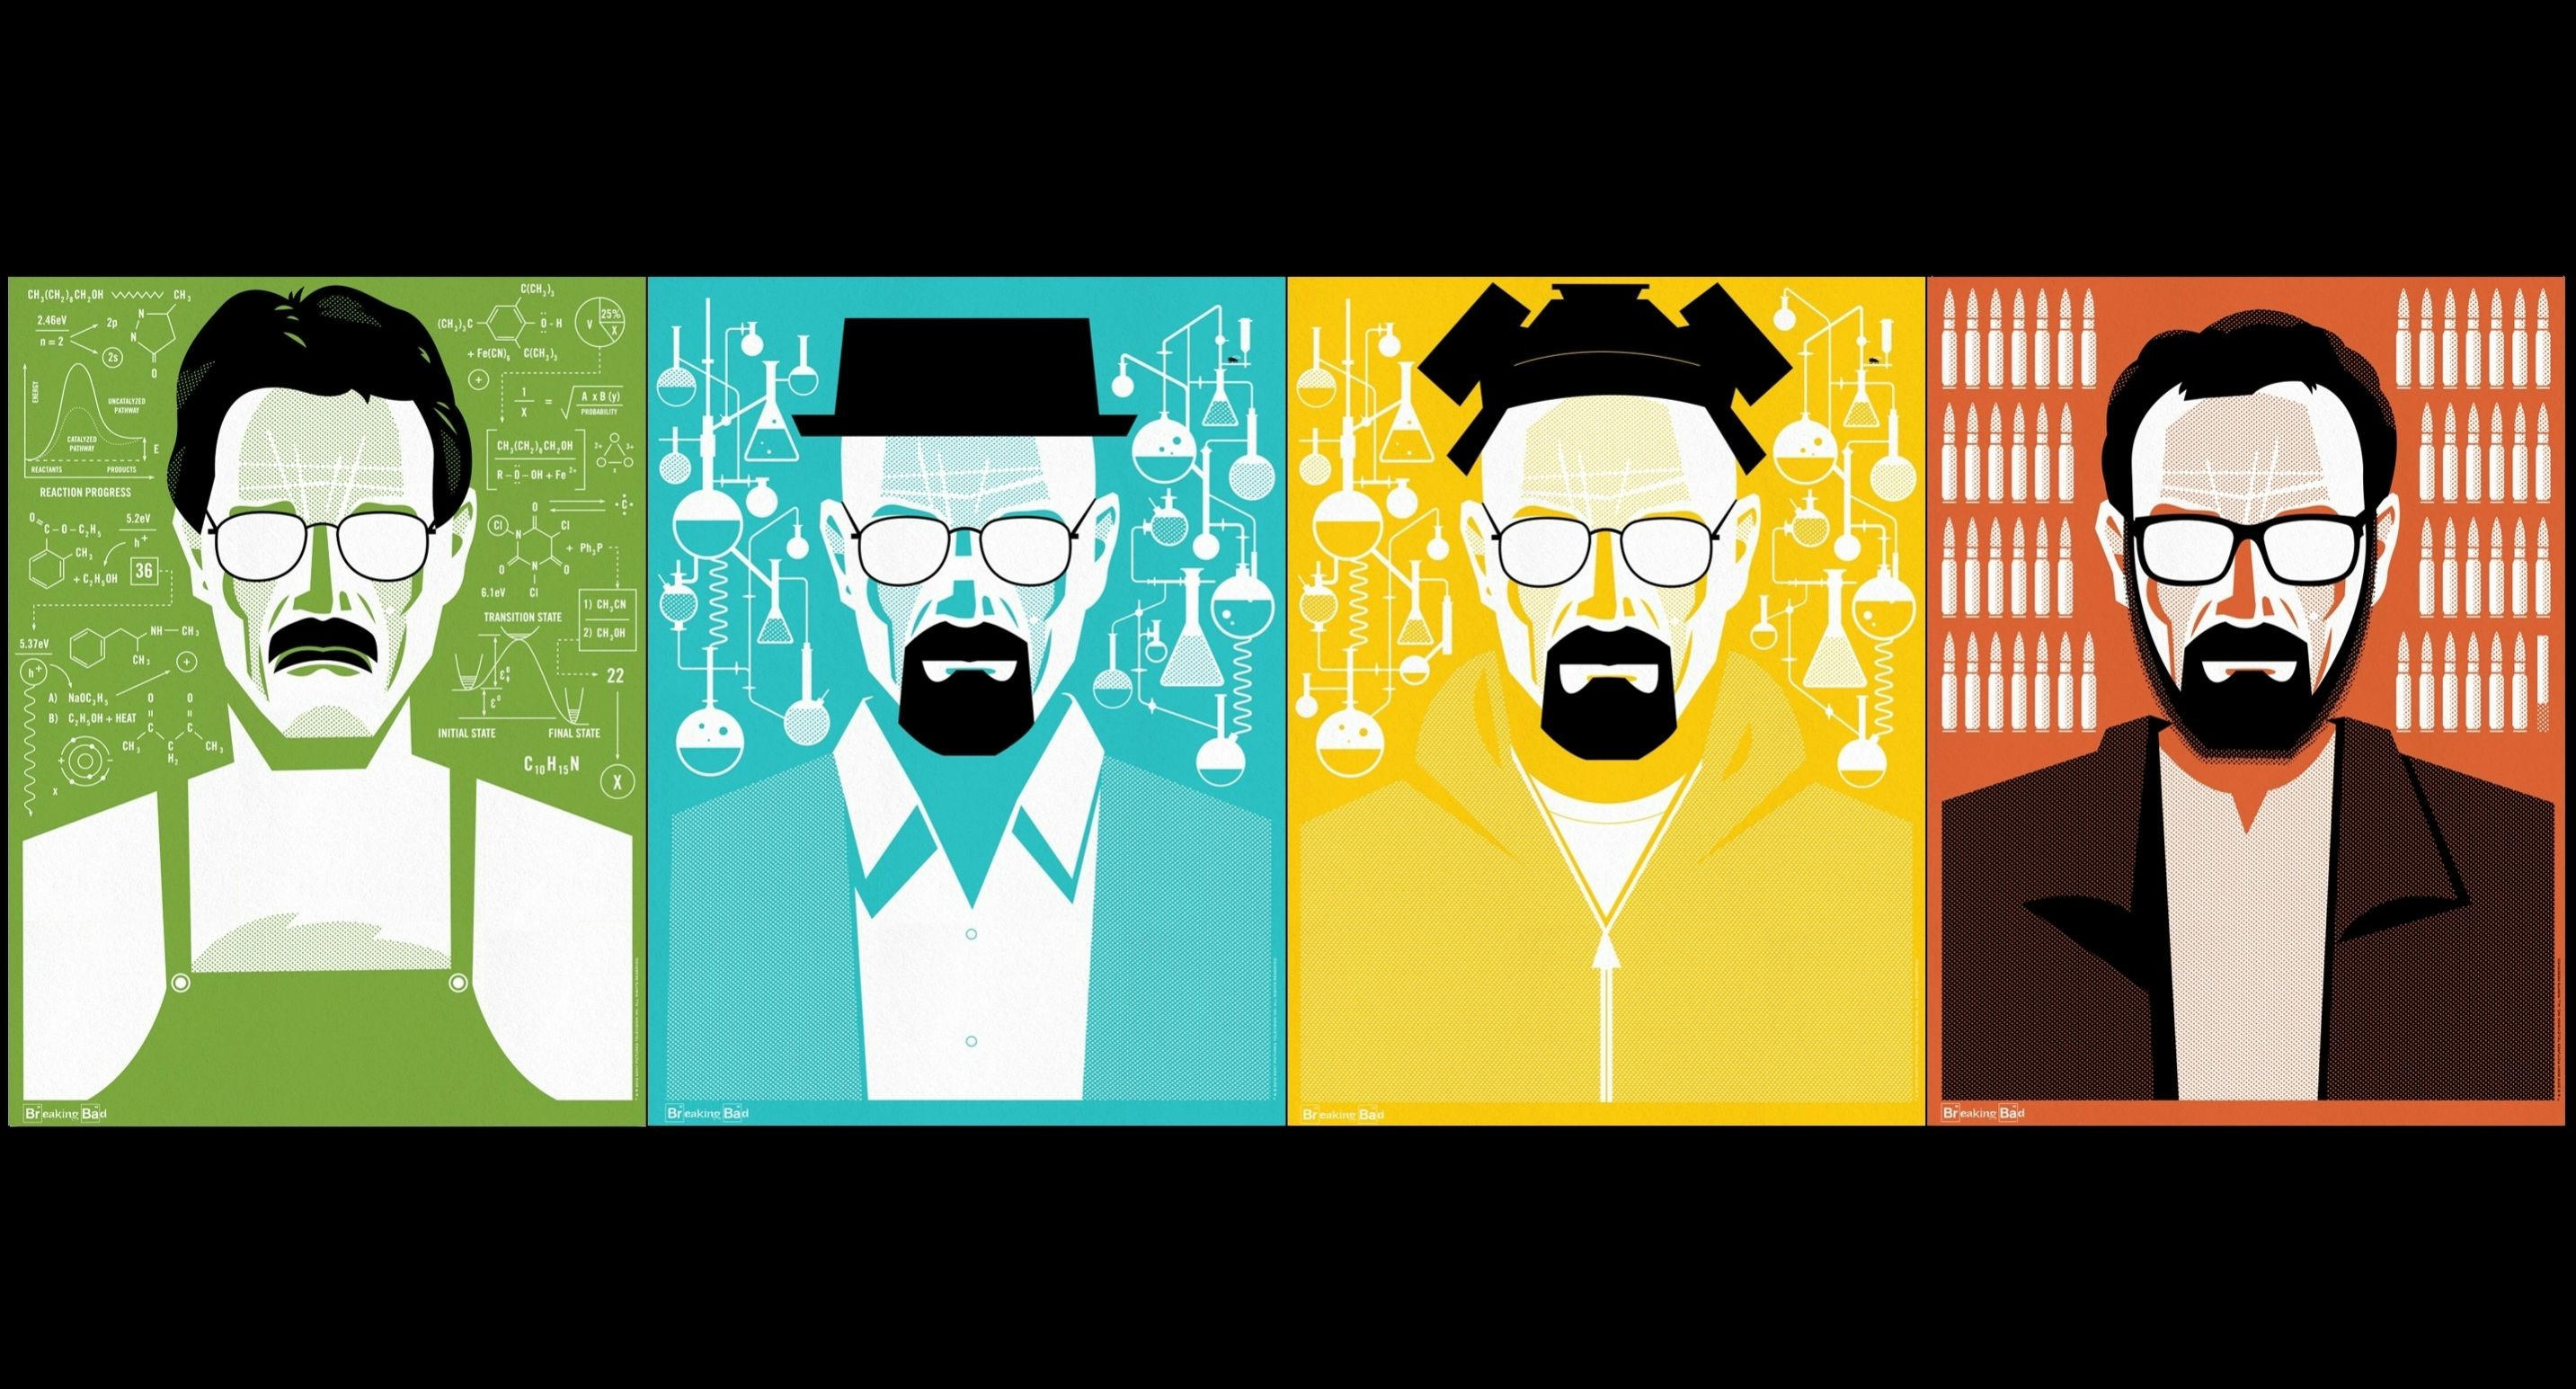 Breaking bad season 5 wallpaper | cool hd wallpapers.